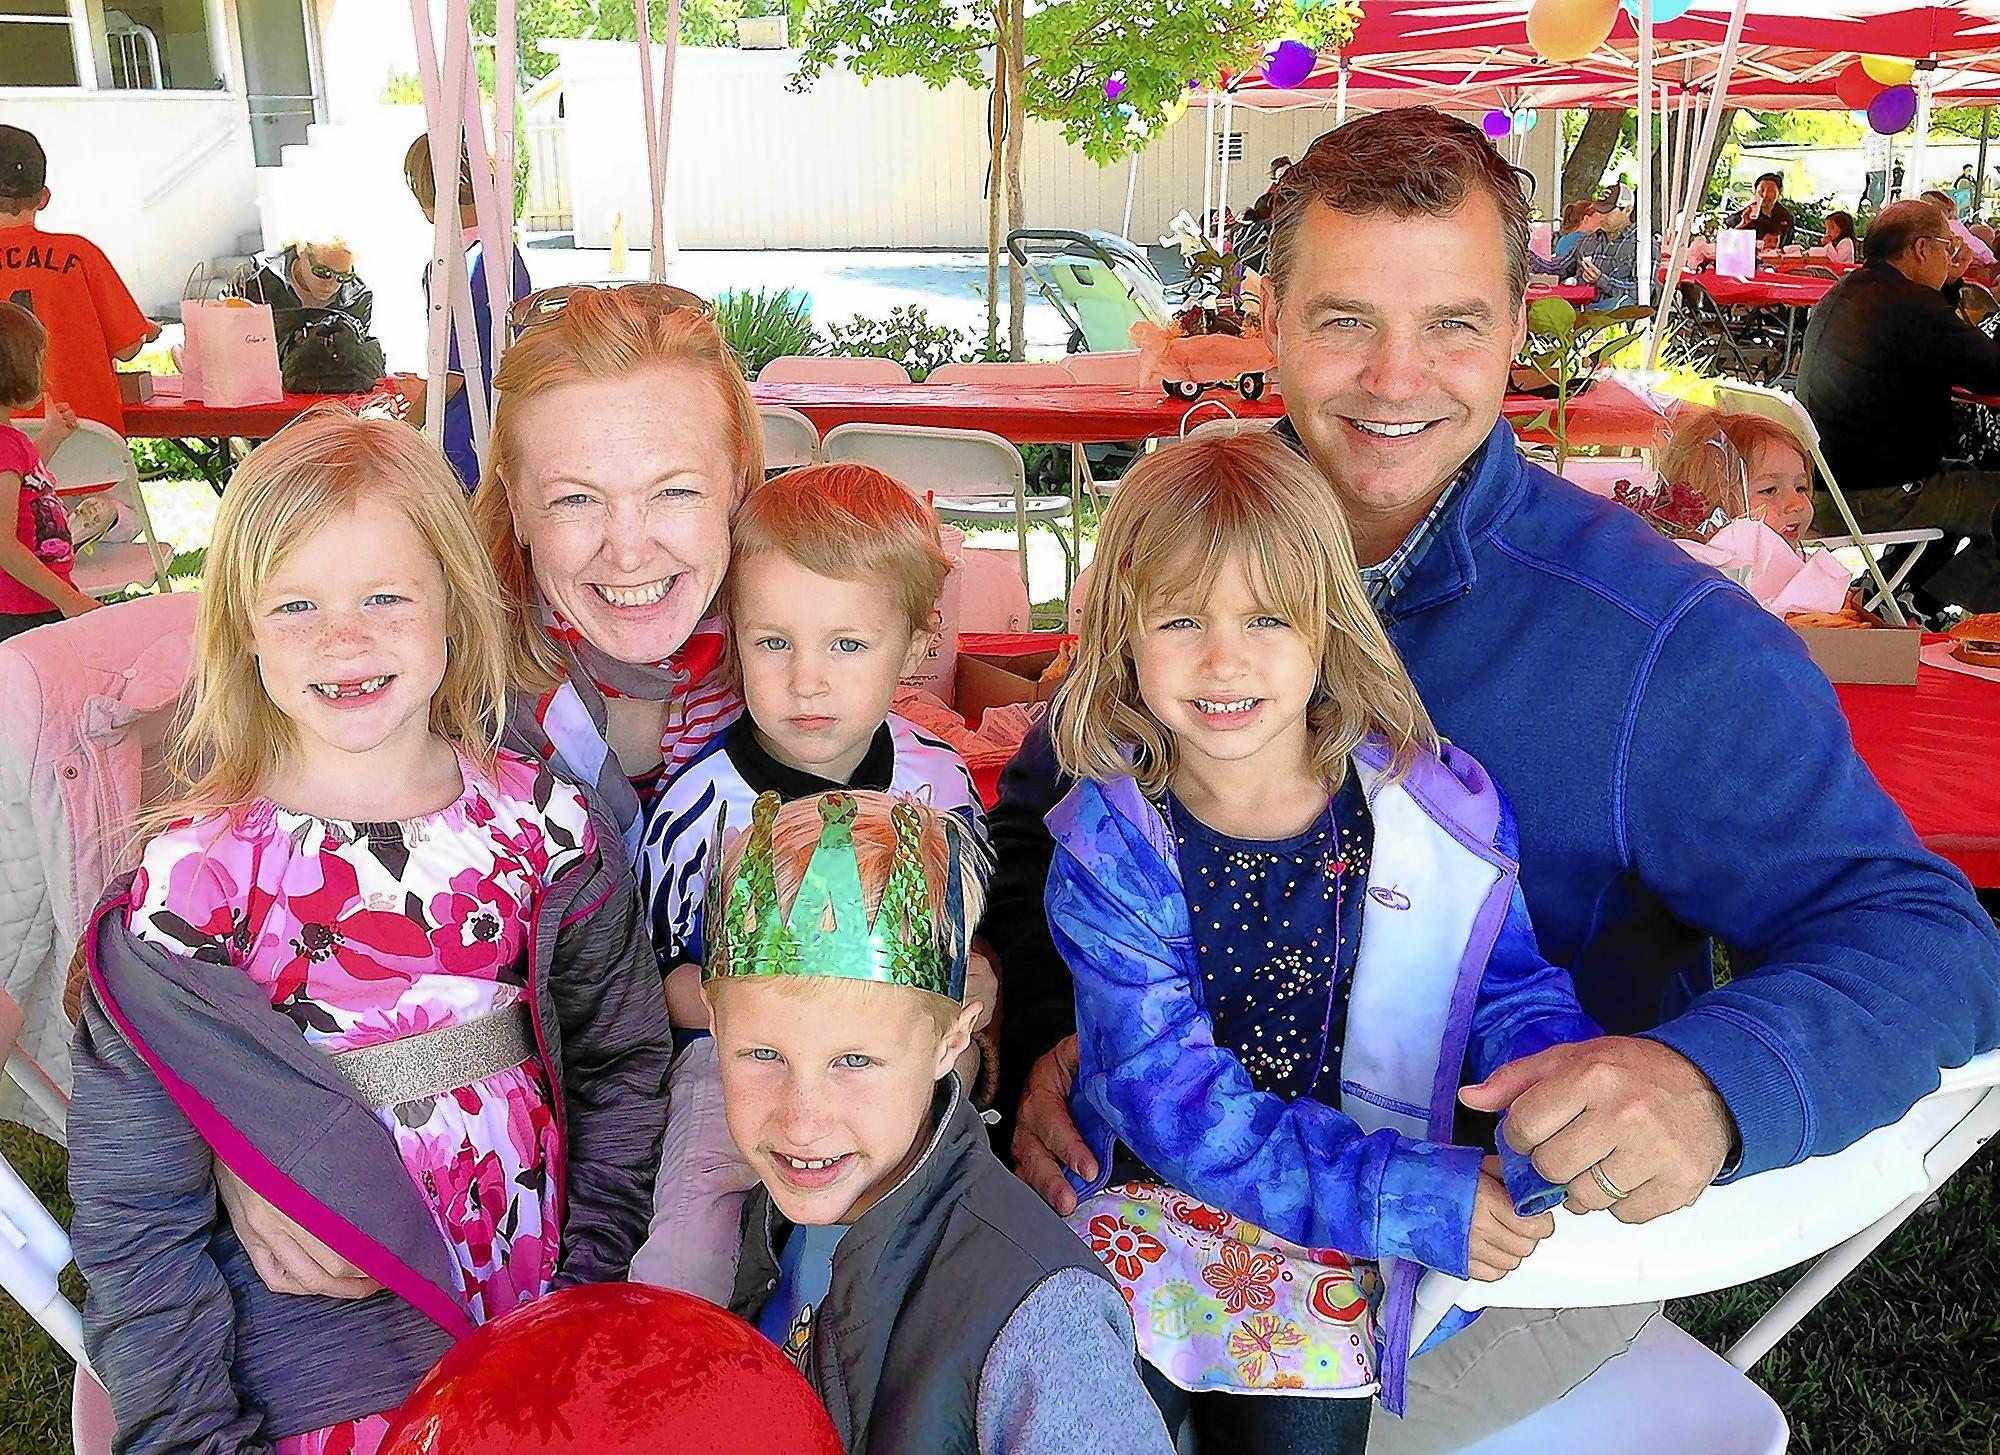 Bryan, Courtney Thomas and family enjoy their sixth year at St. George's Dragon Faire, held on Saturday, April 26.